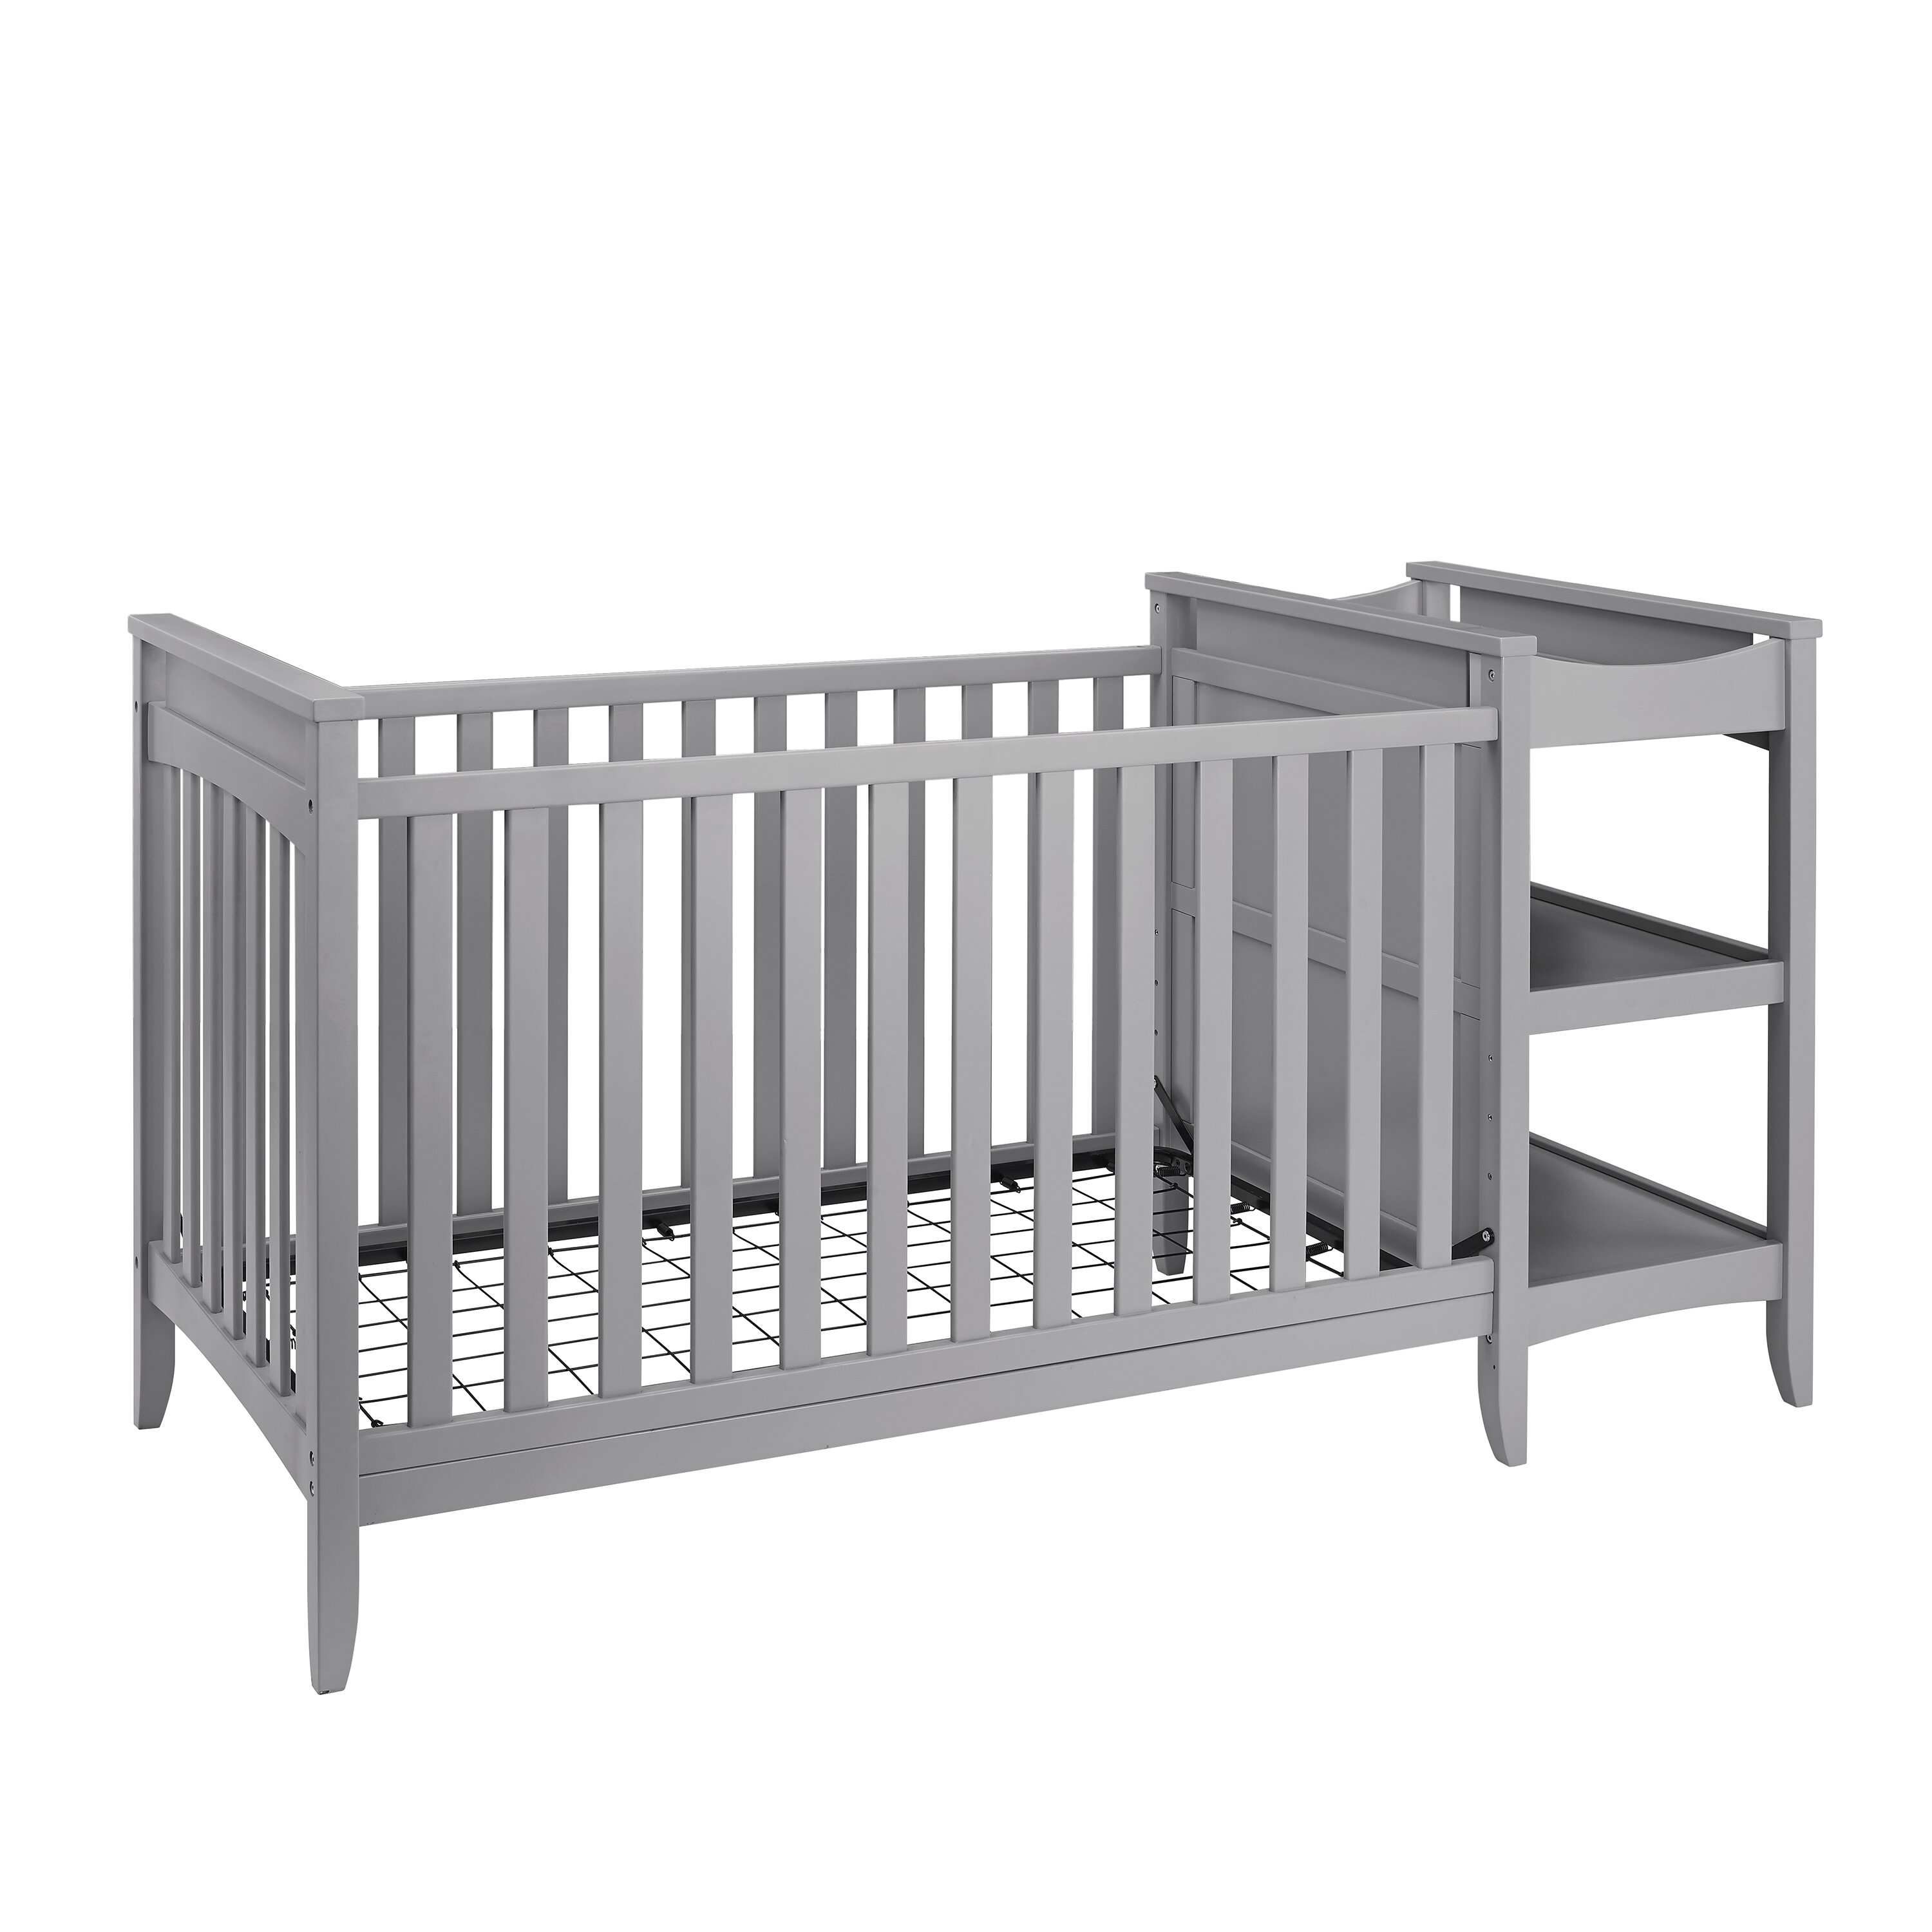 Crib for sale san diego - Baby Relax Emma 2 In 1 Convertible Crib With Changing Table